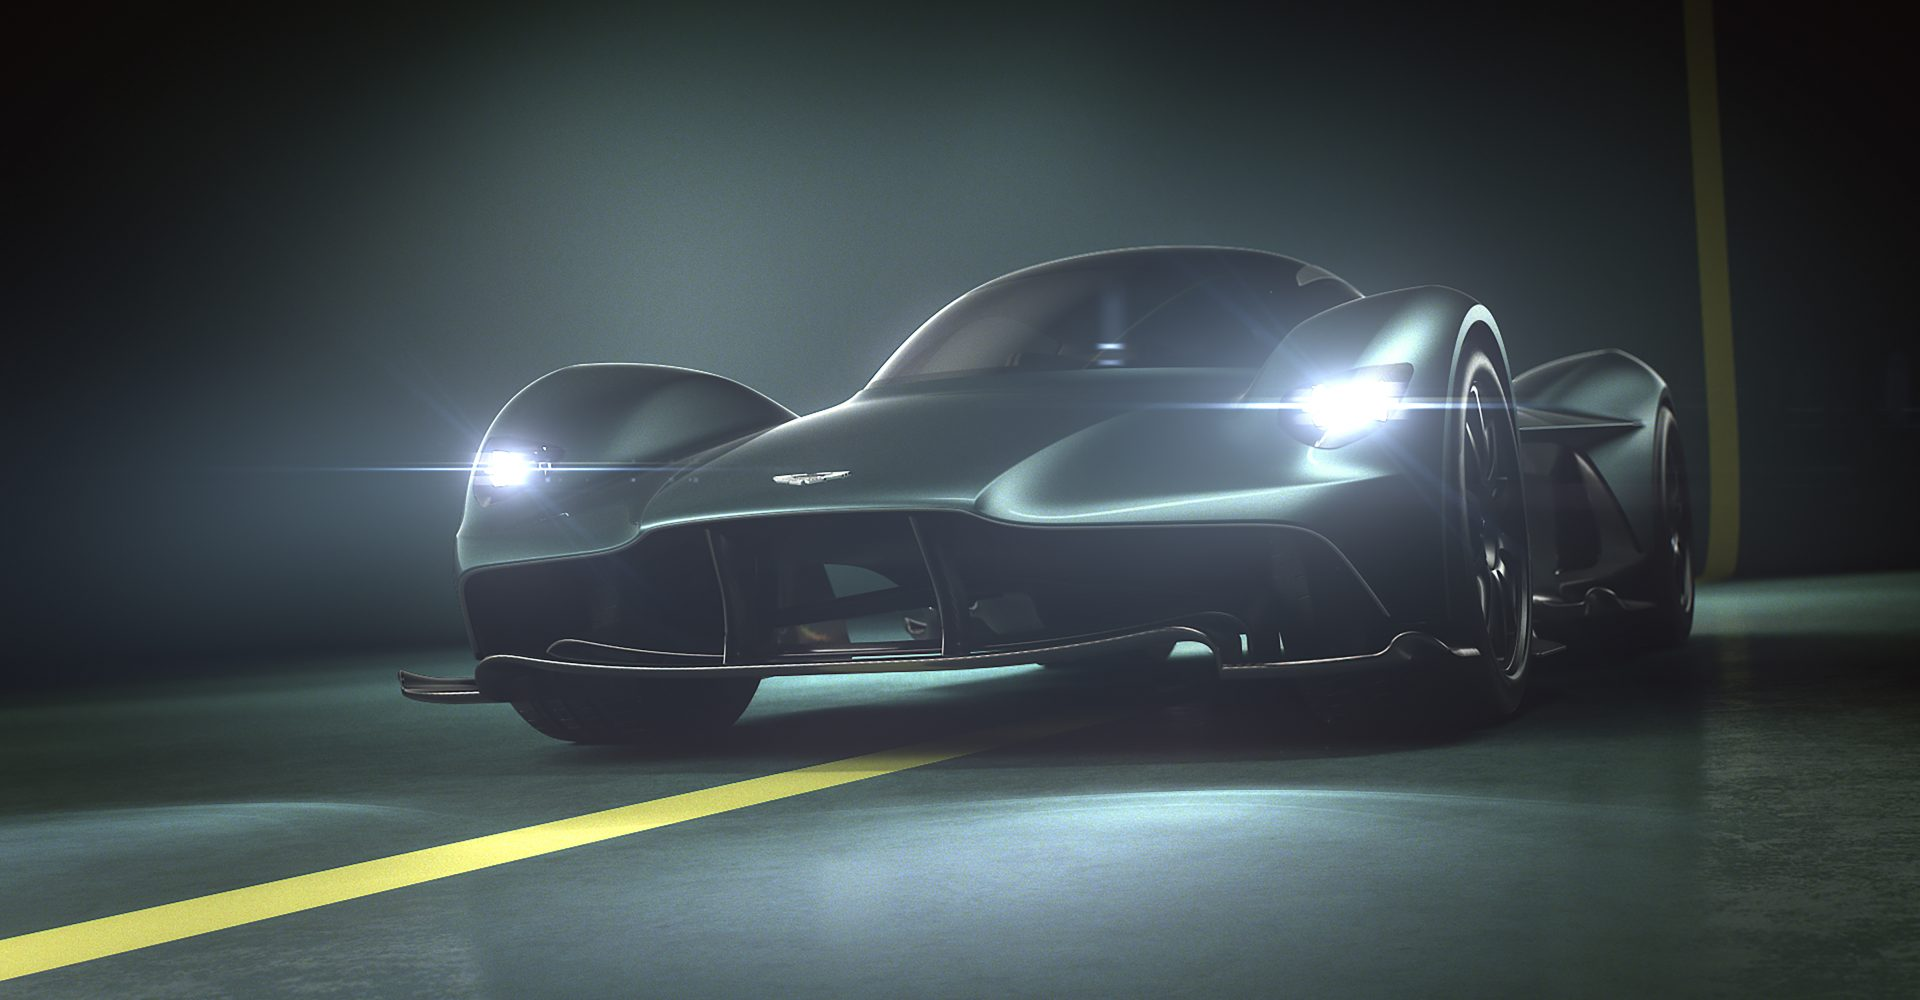 Aston Martin Names Upcoming Hypercar Valkyrie